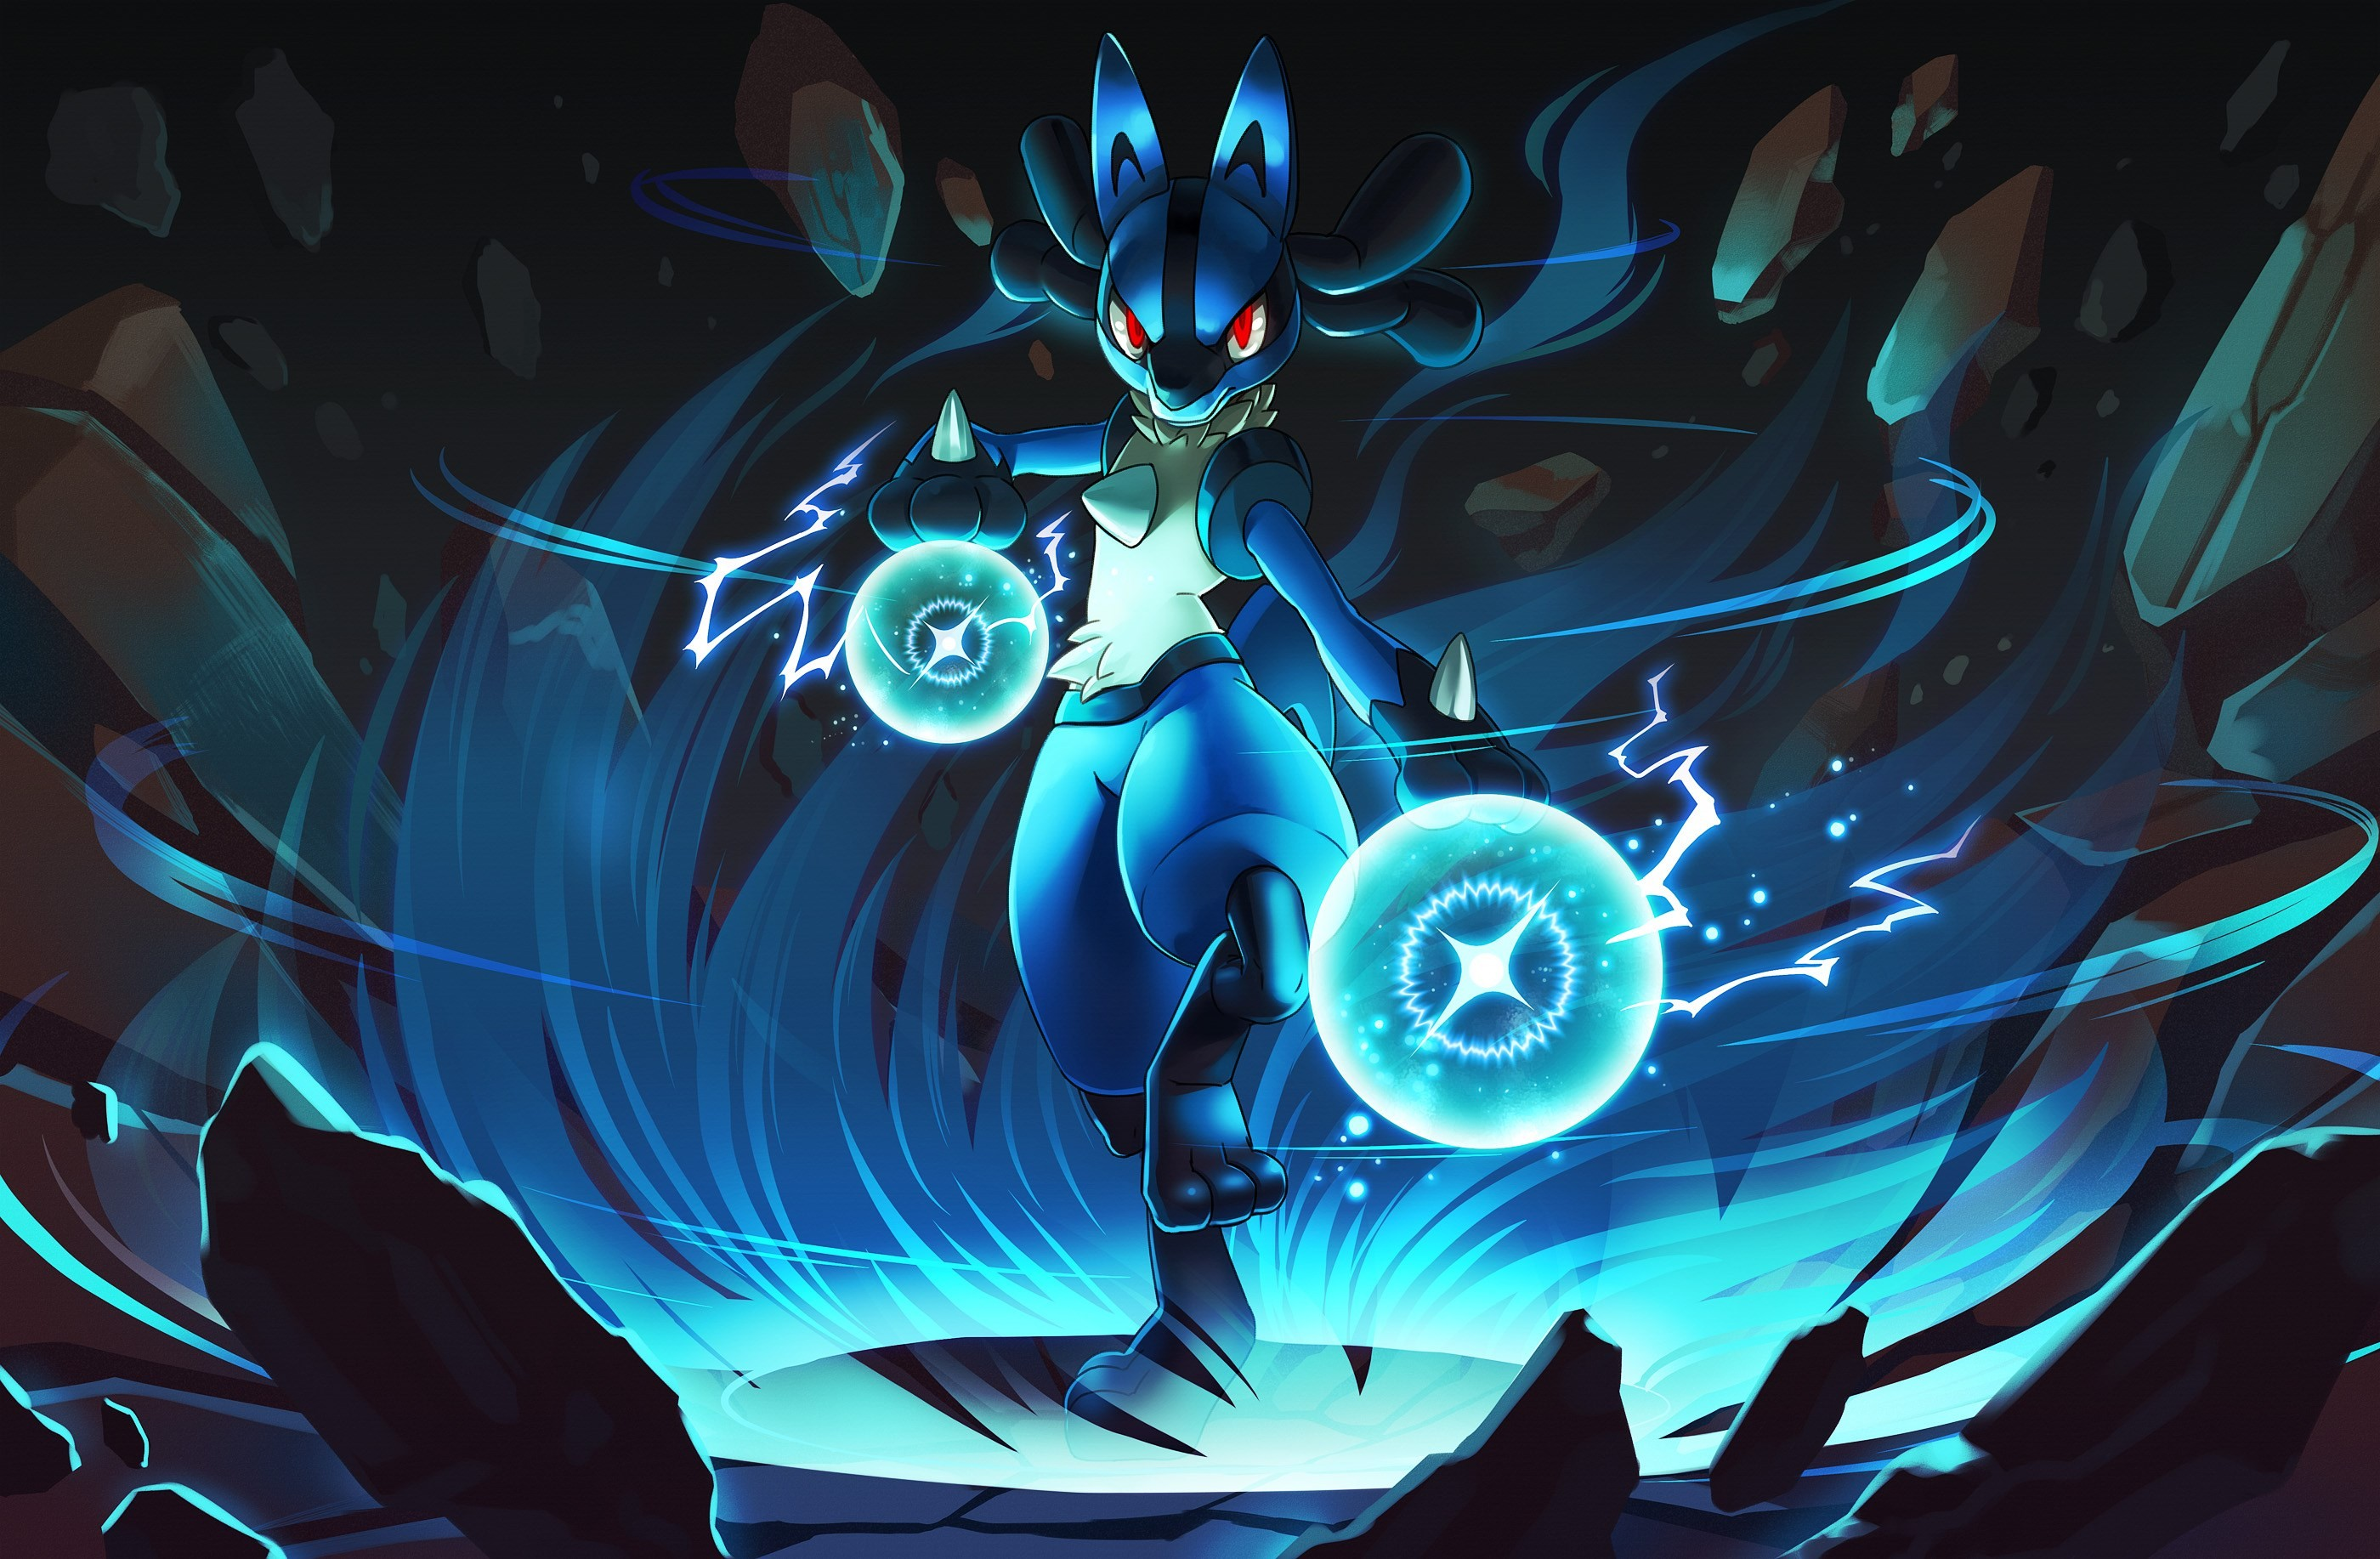 Lucario Wallpaper 1 Download Free Amazing High Resolution